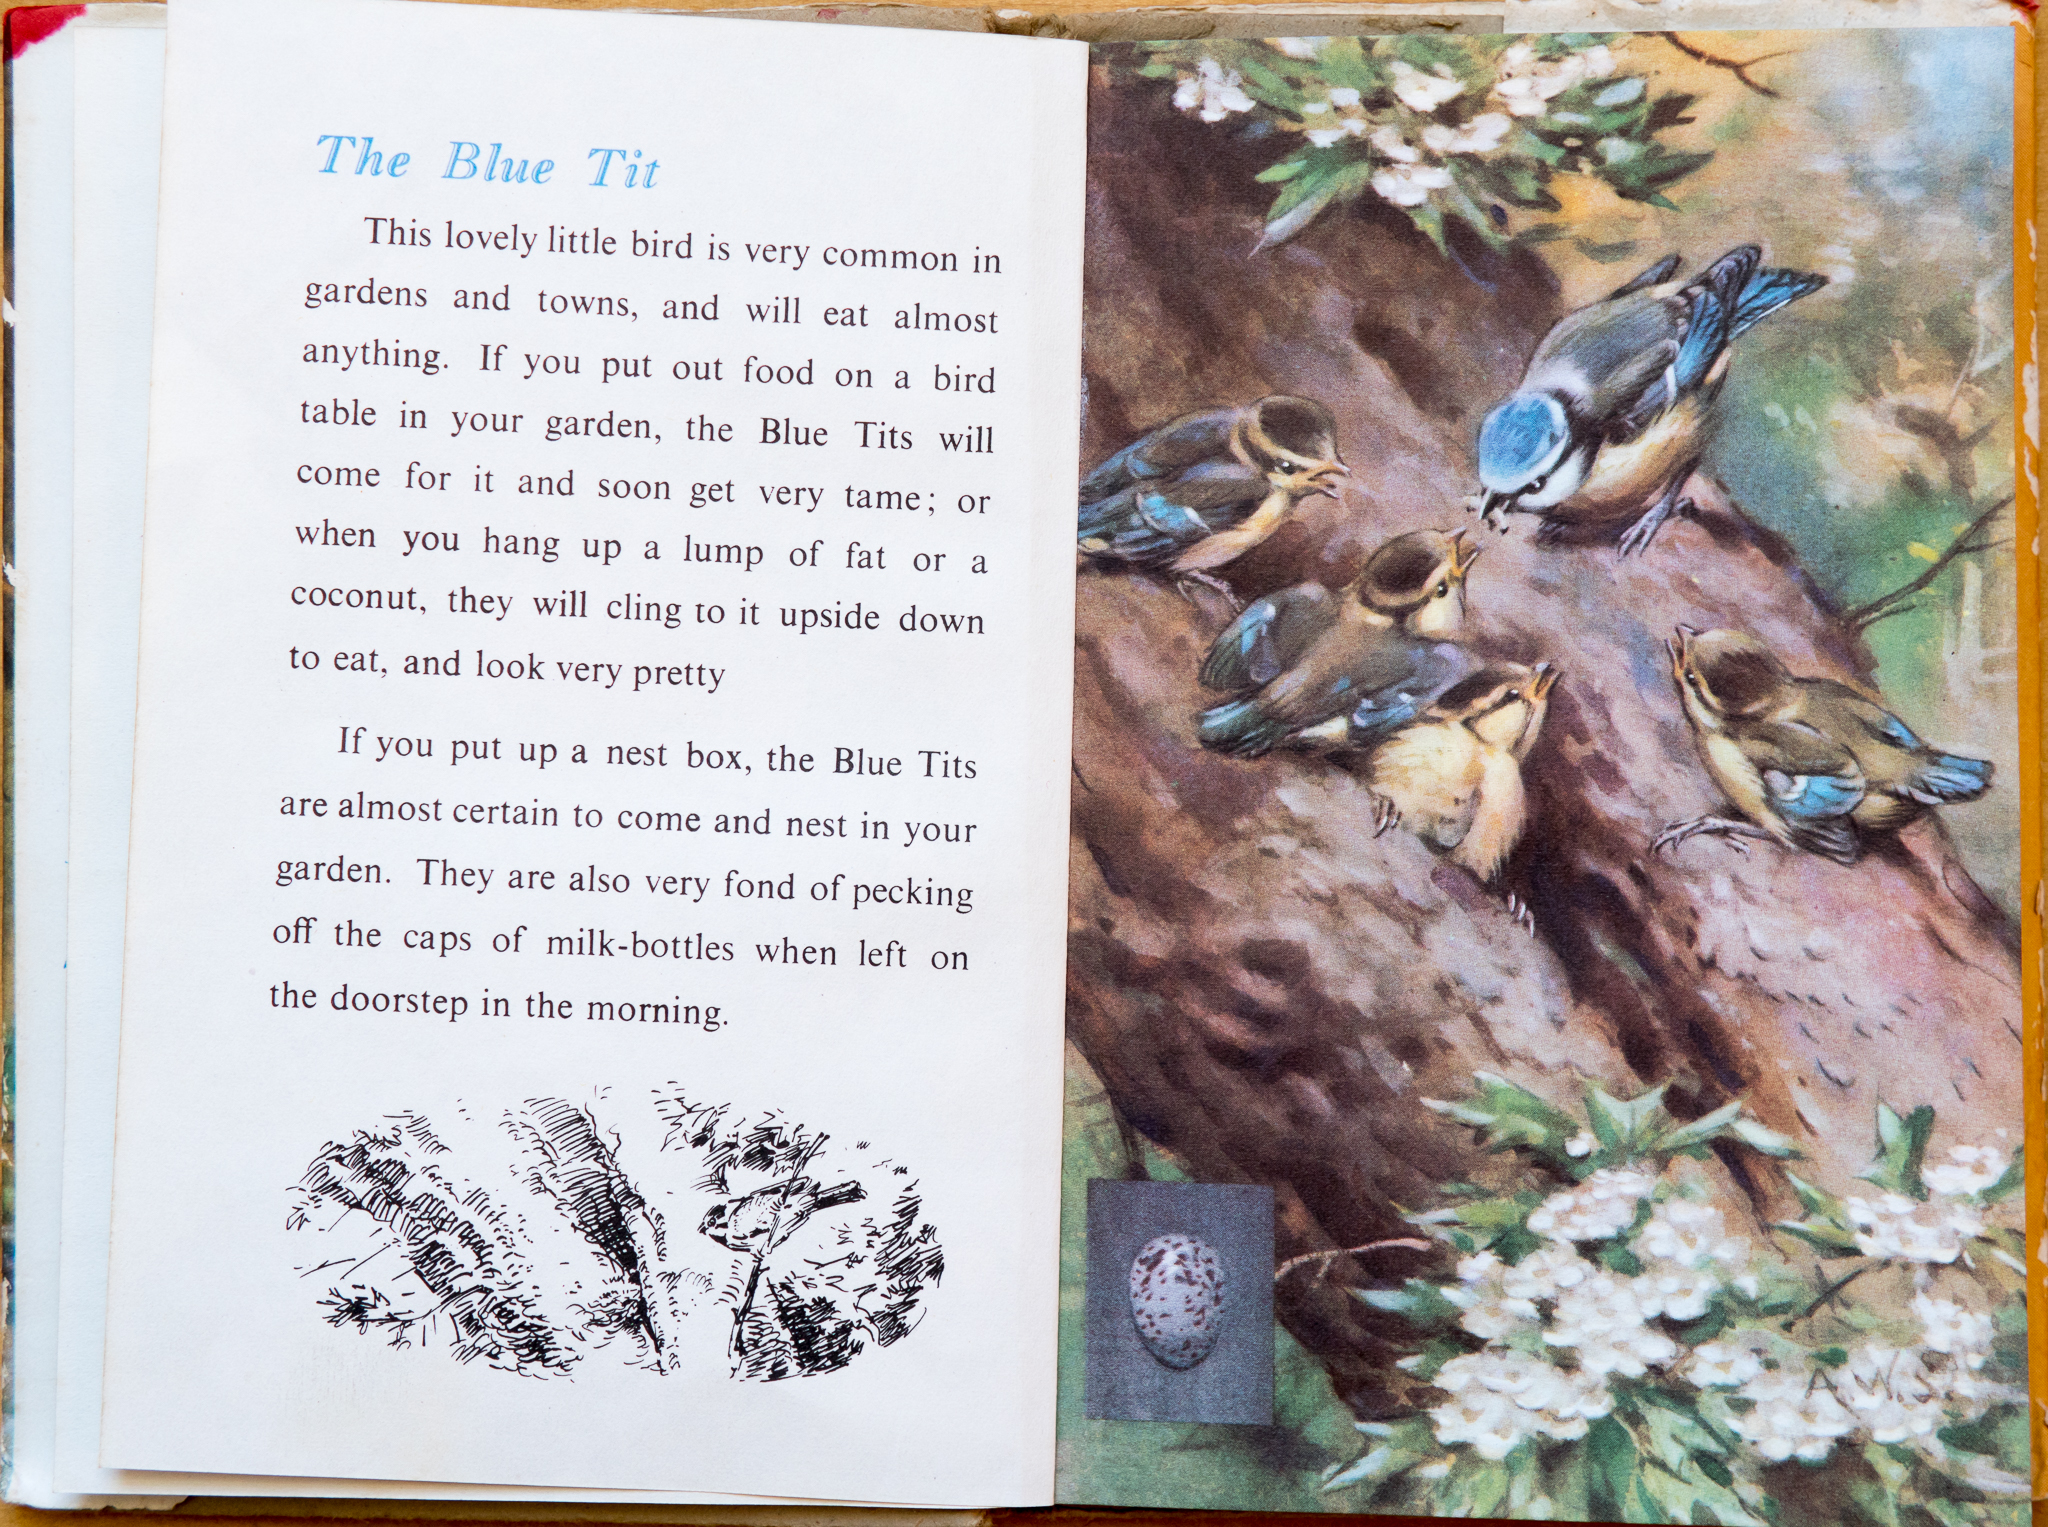 The Little Book of British Birds